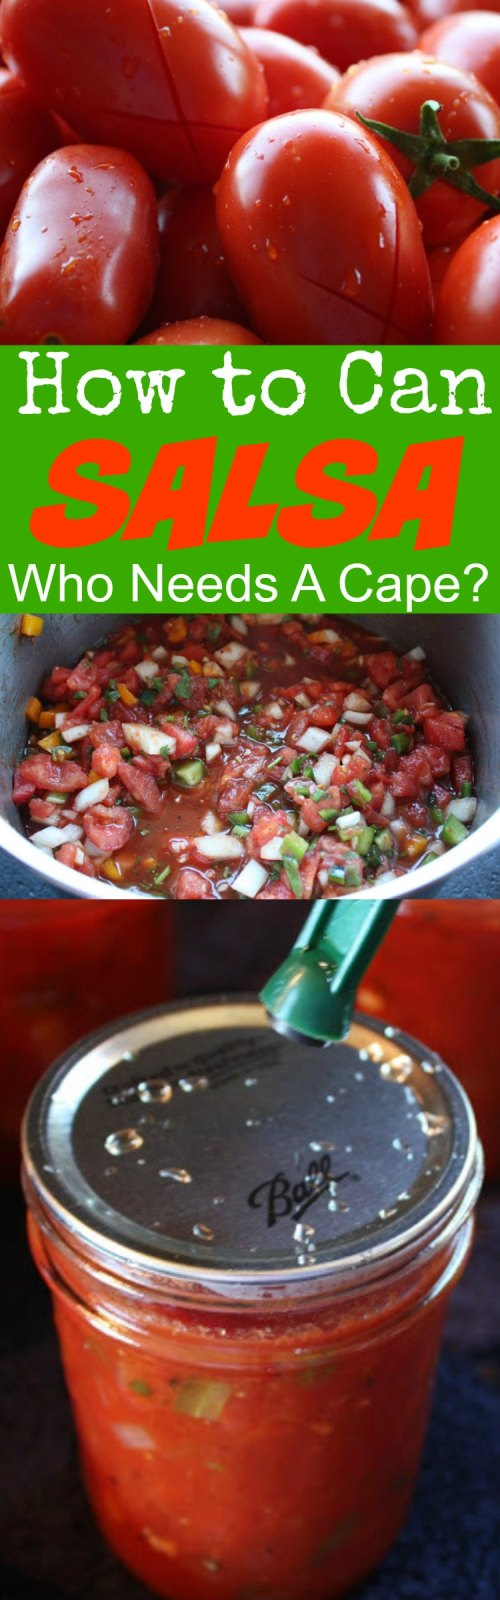 pile of prepped tomatoes for canning, a bowl of prepared salsa and a process shot of canning lid on jar